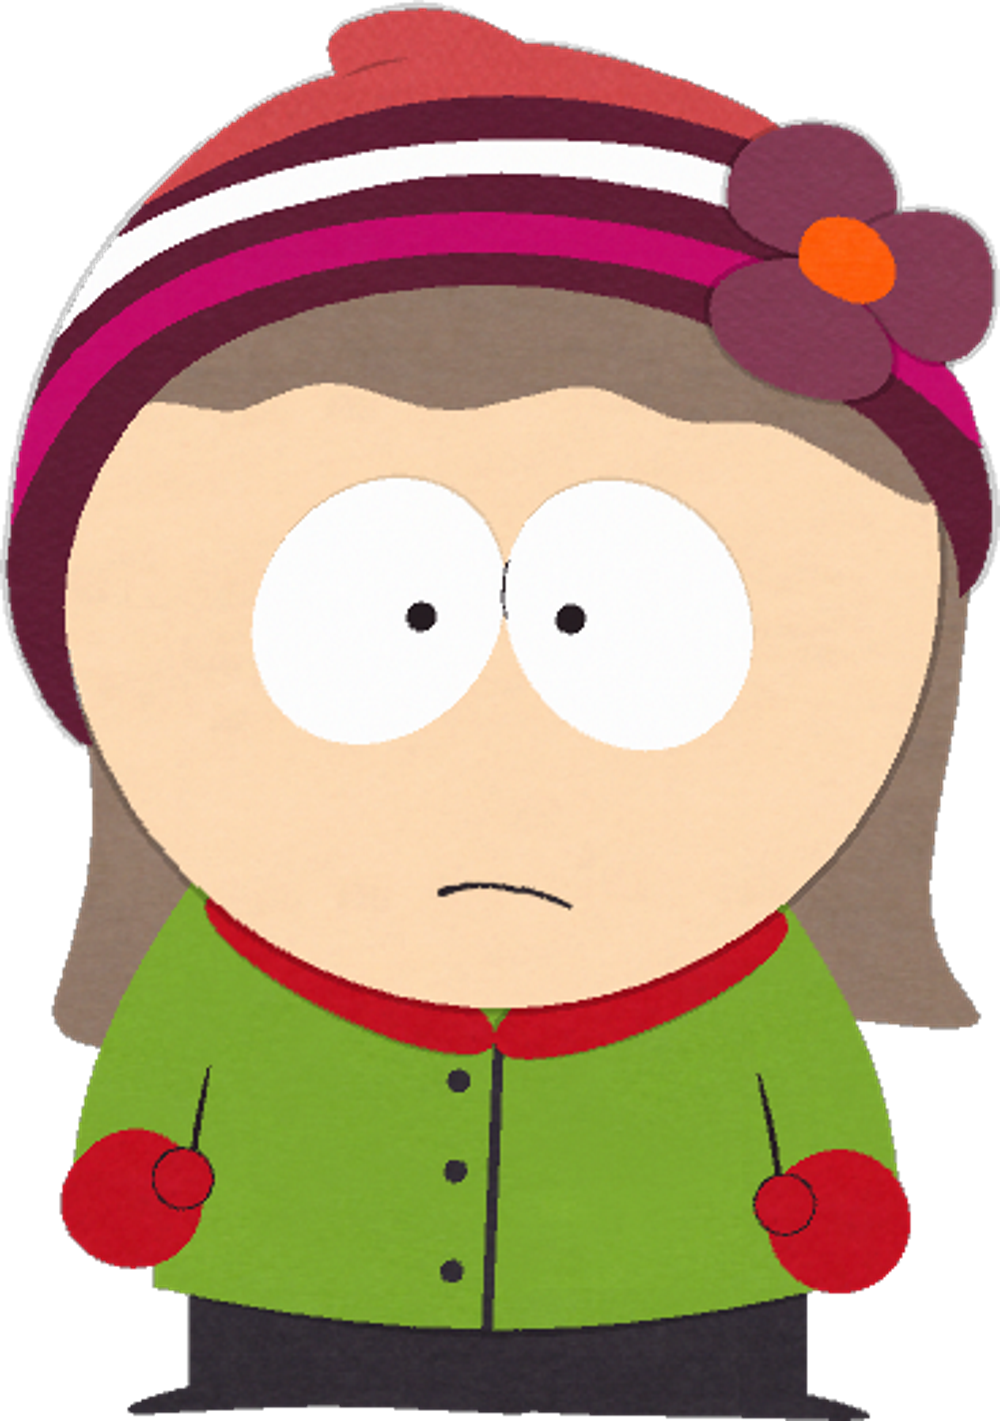 Cartman transparent older. Heidi turner south park